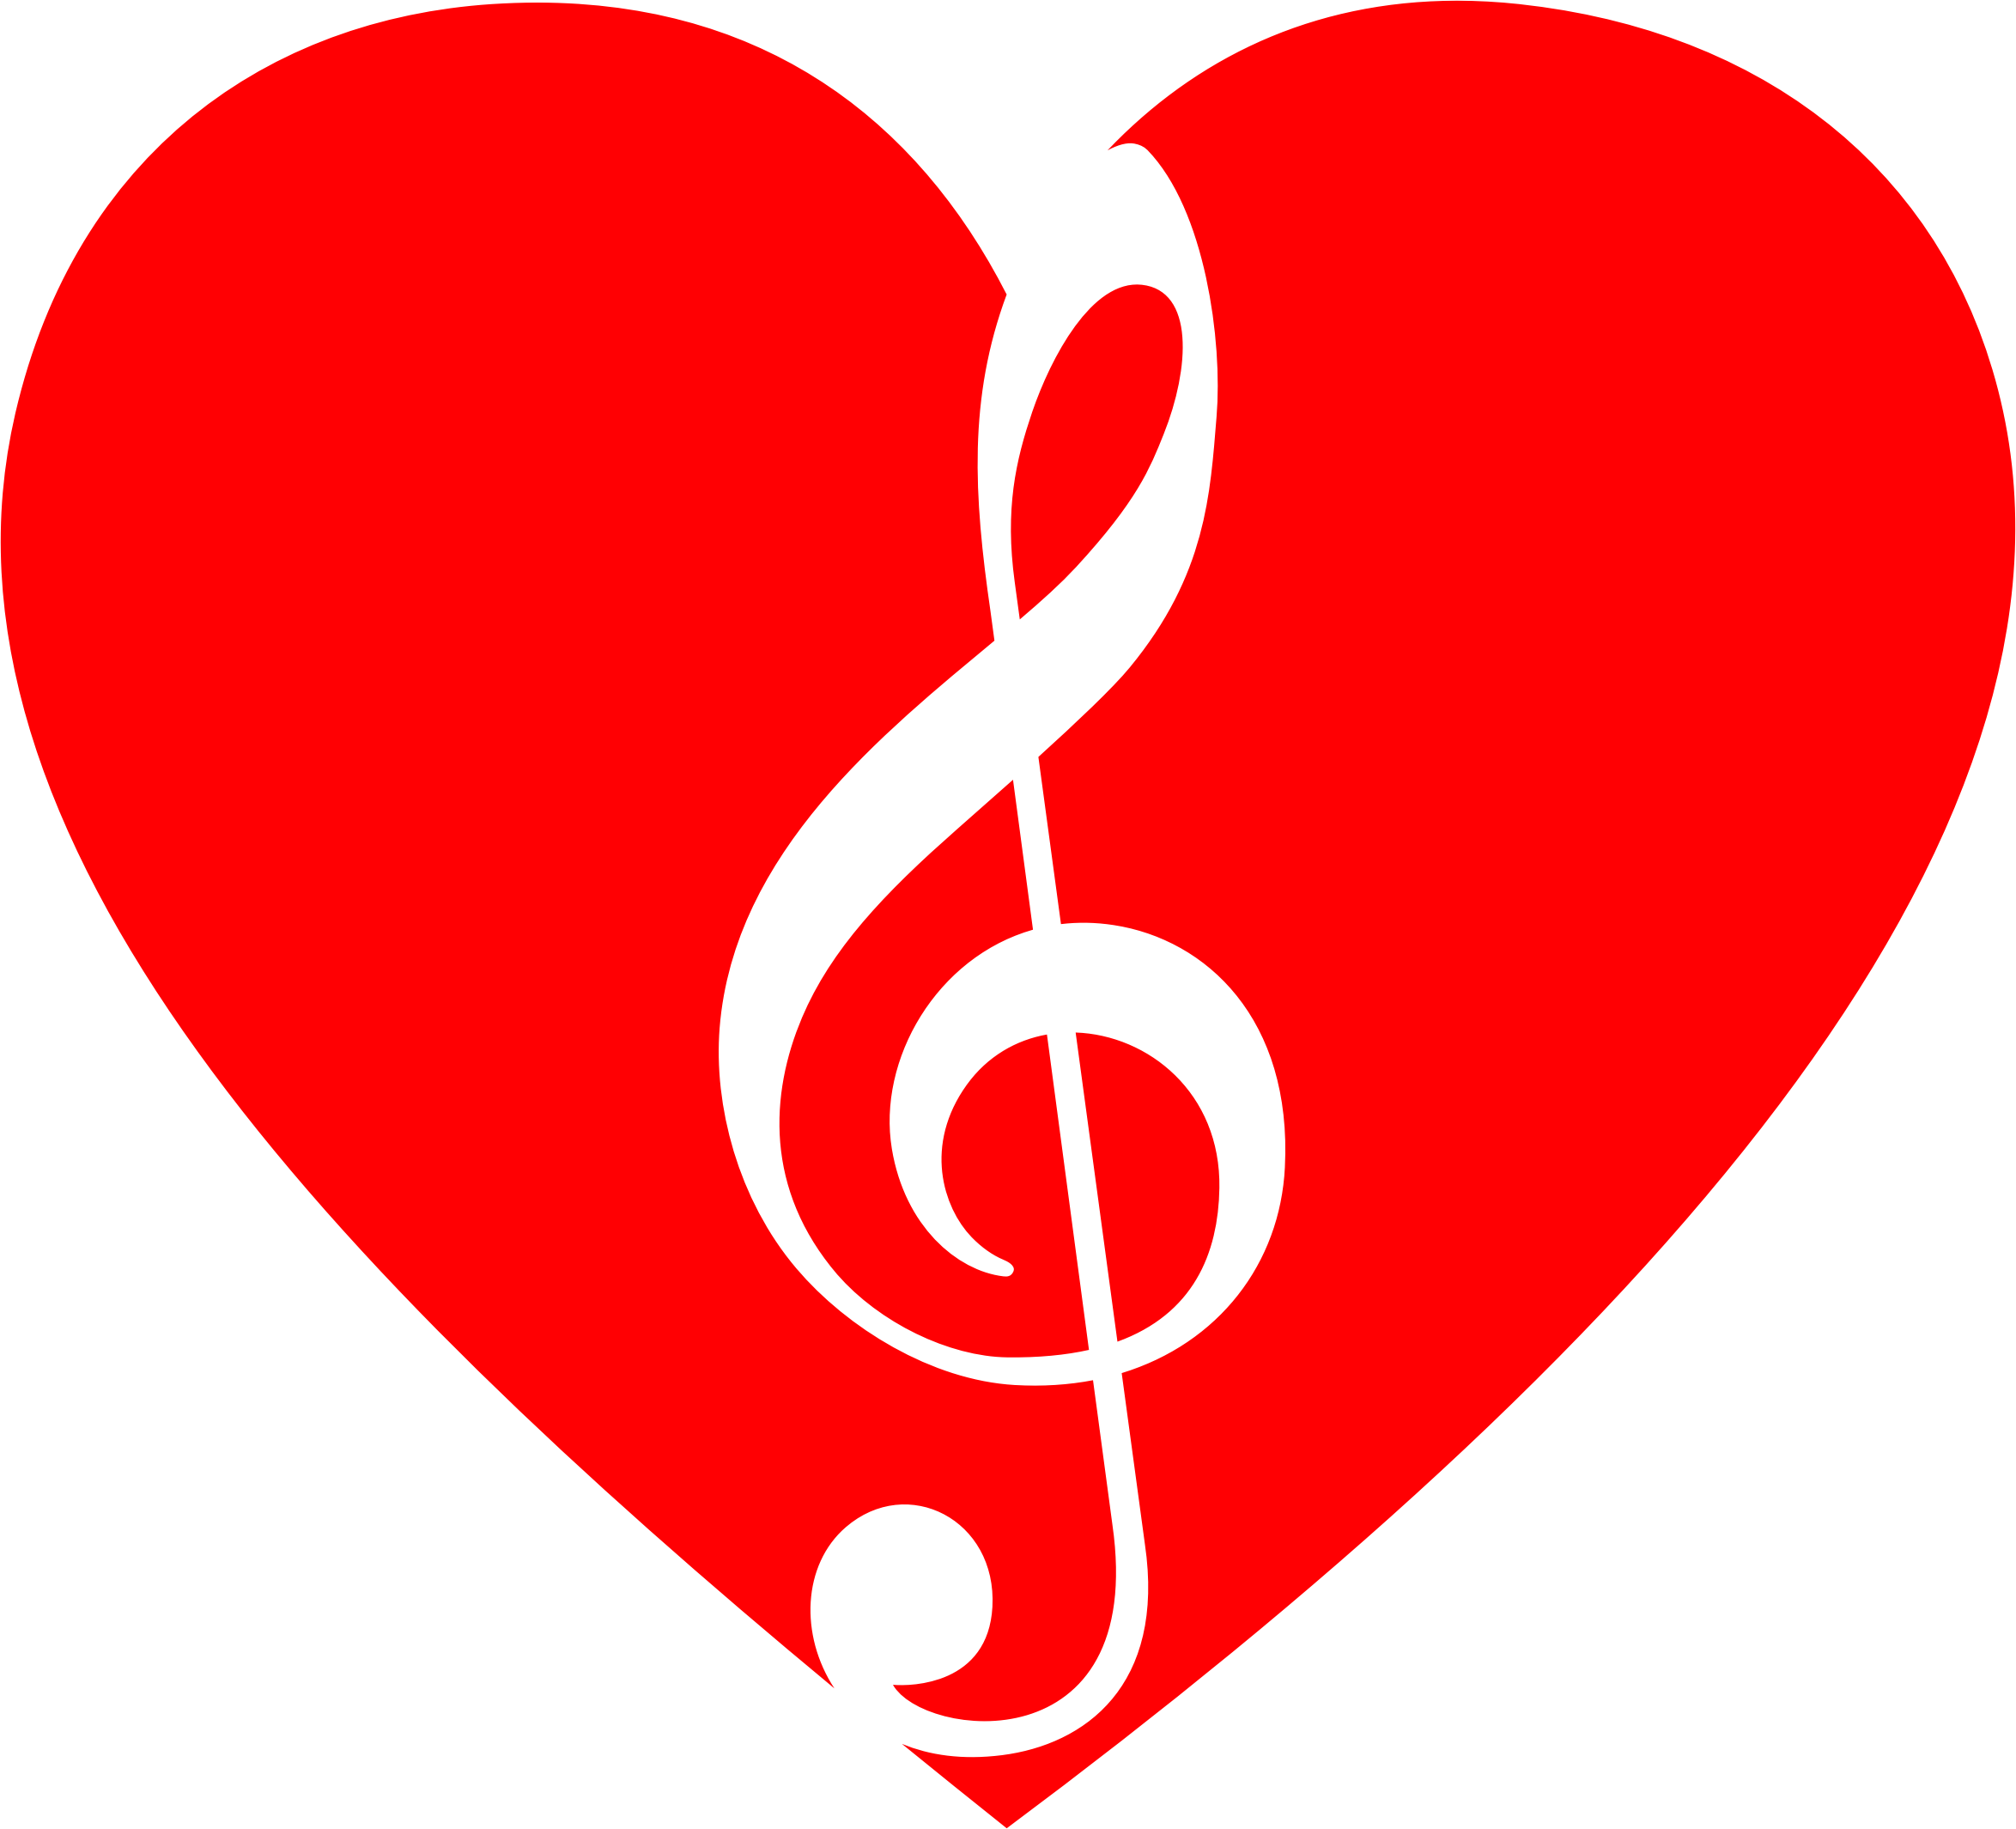 Music clipart heart. Musical big image png